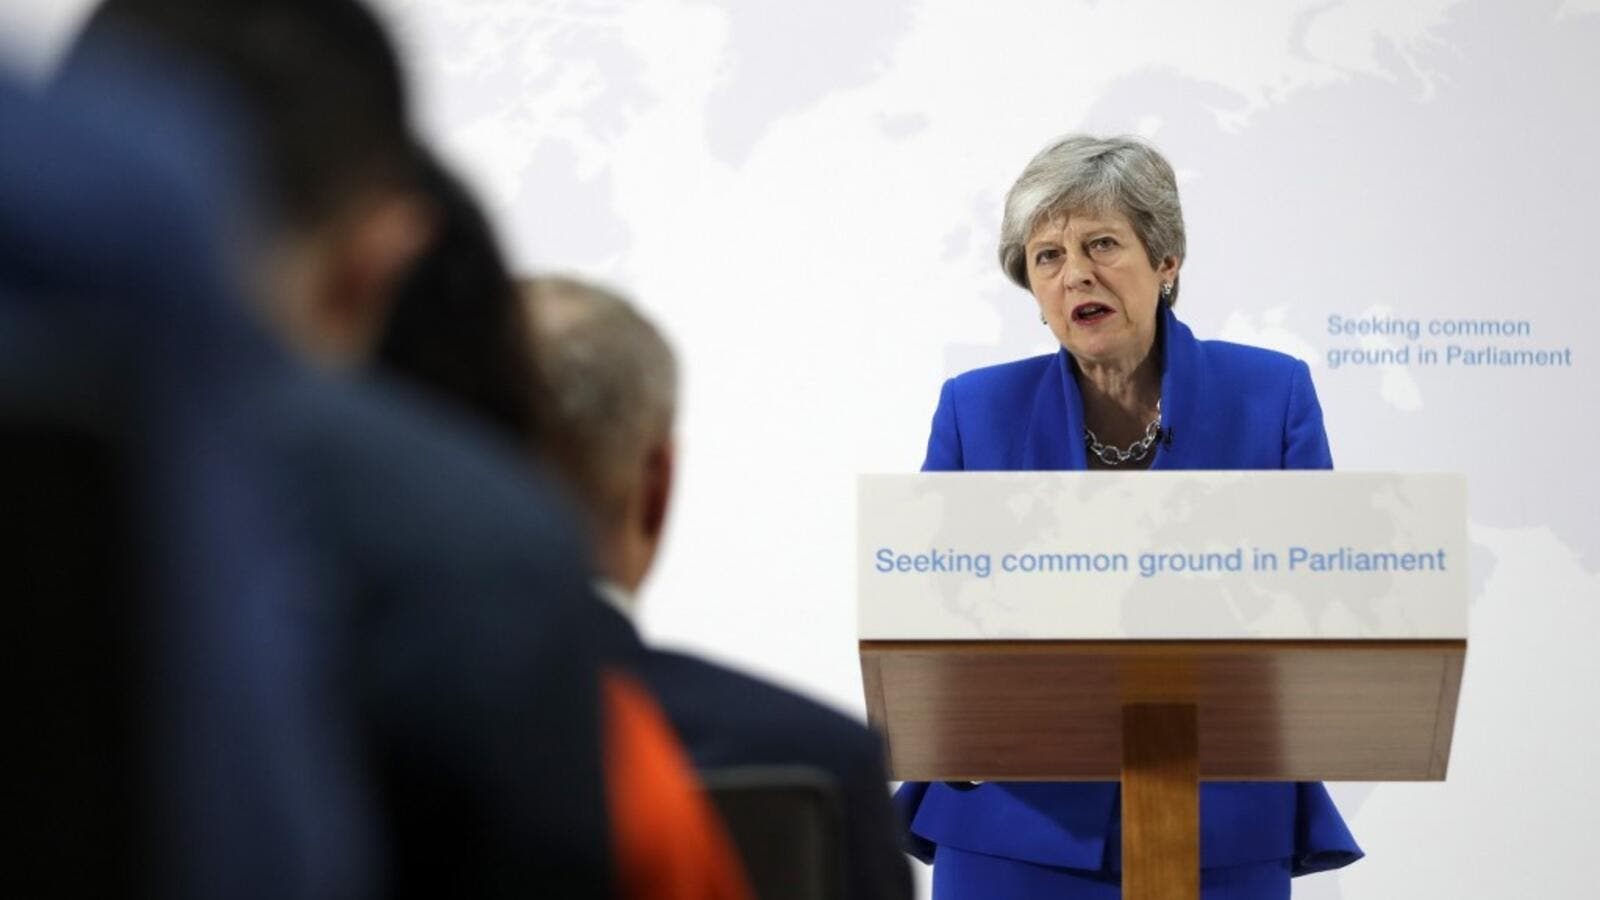 Britain's Prime Minister Theresa May delivers a keynote speech in central London on May 21, 2019. (Kirsty Wigglesworth / POOL / AFP)